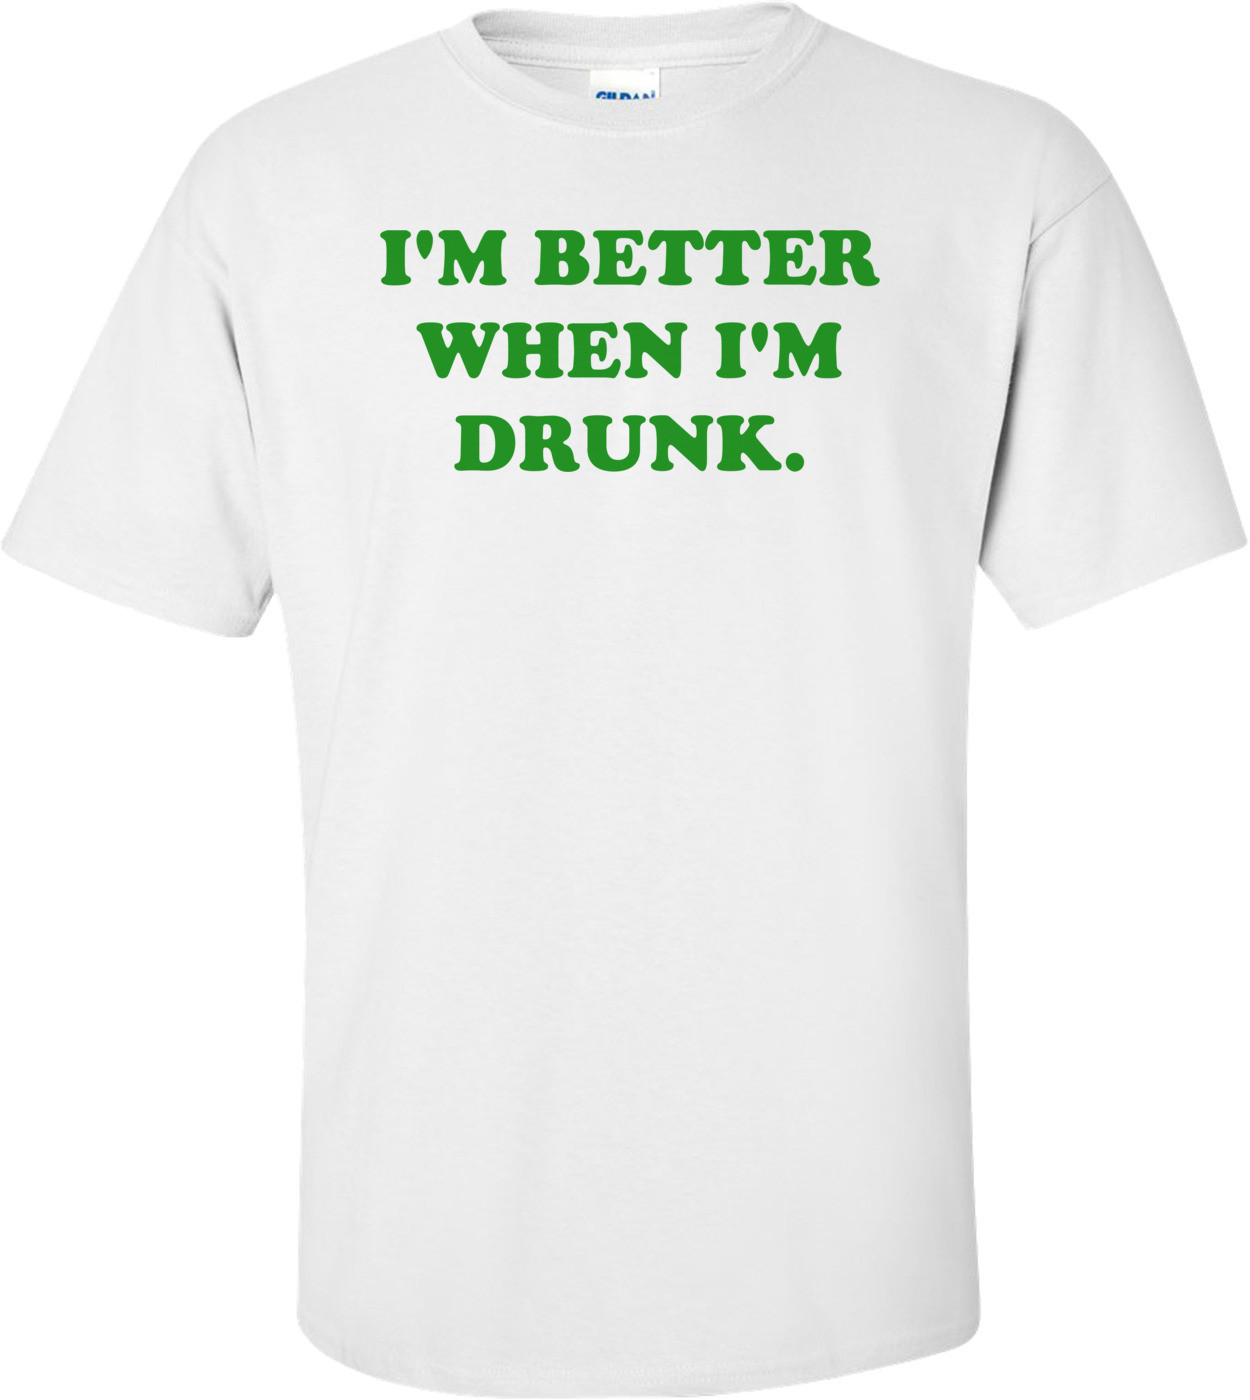 I'M BETTER WHEN I'M DRUNK. Shirt